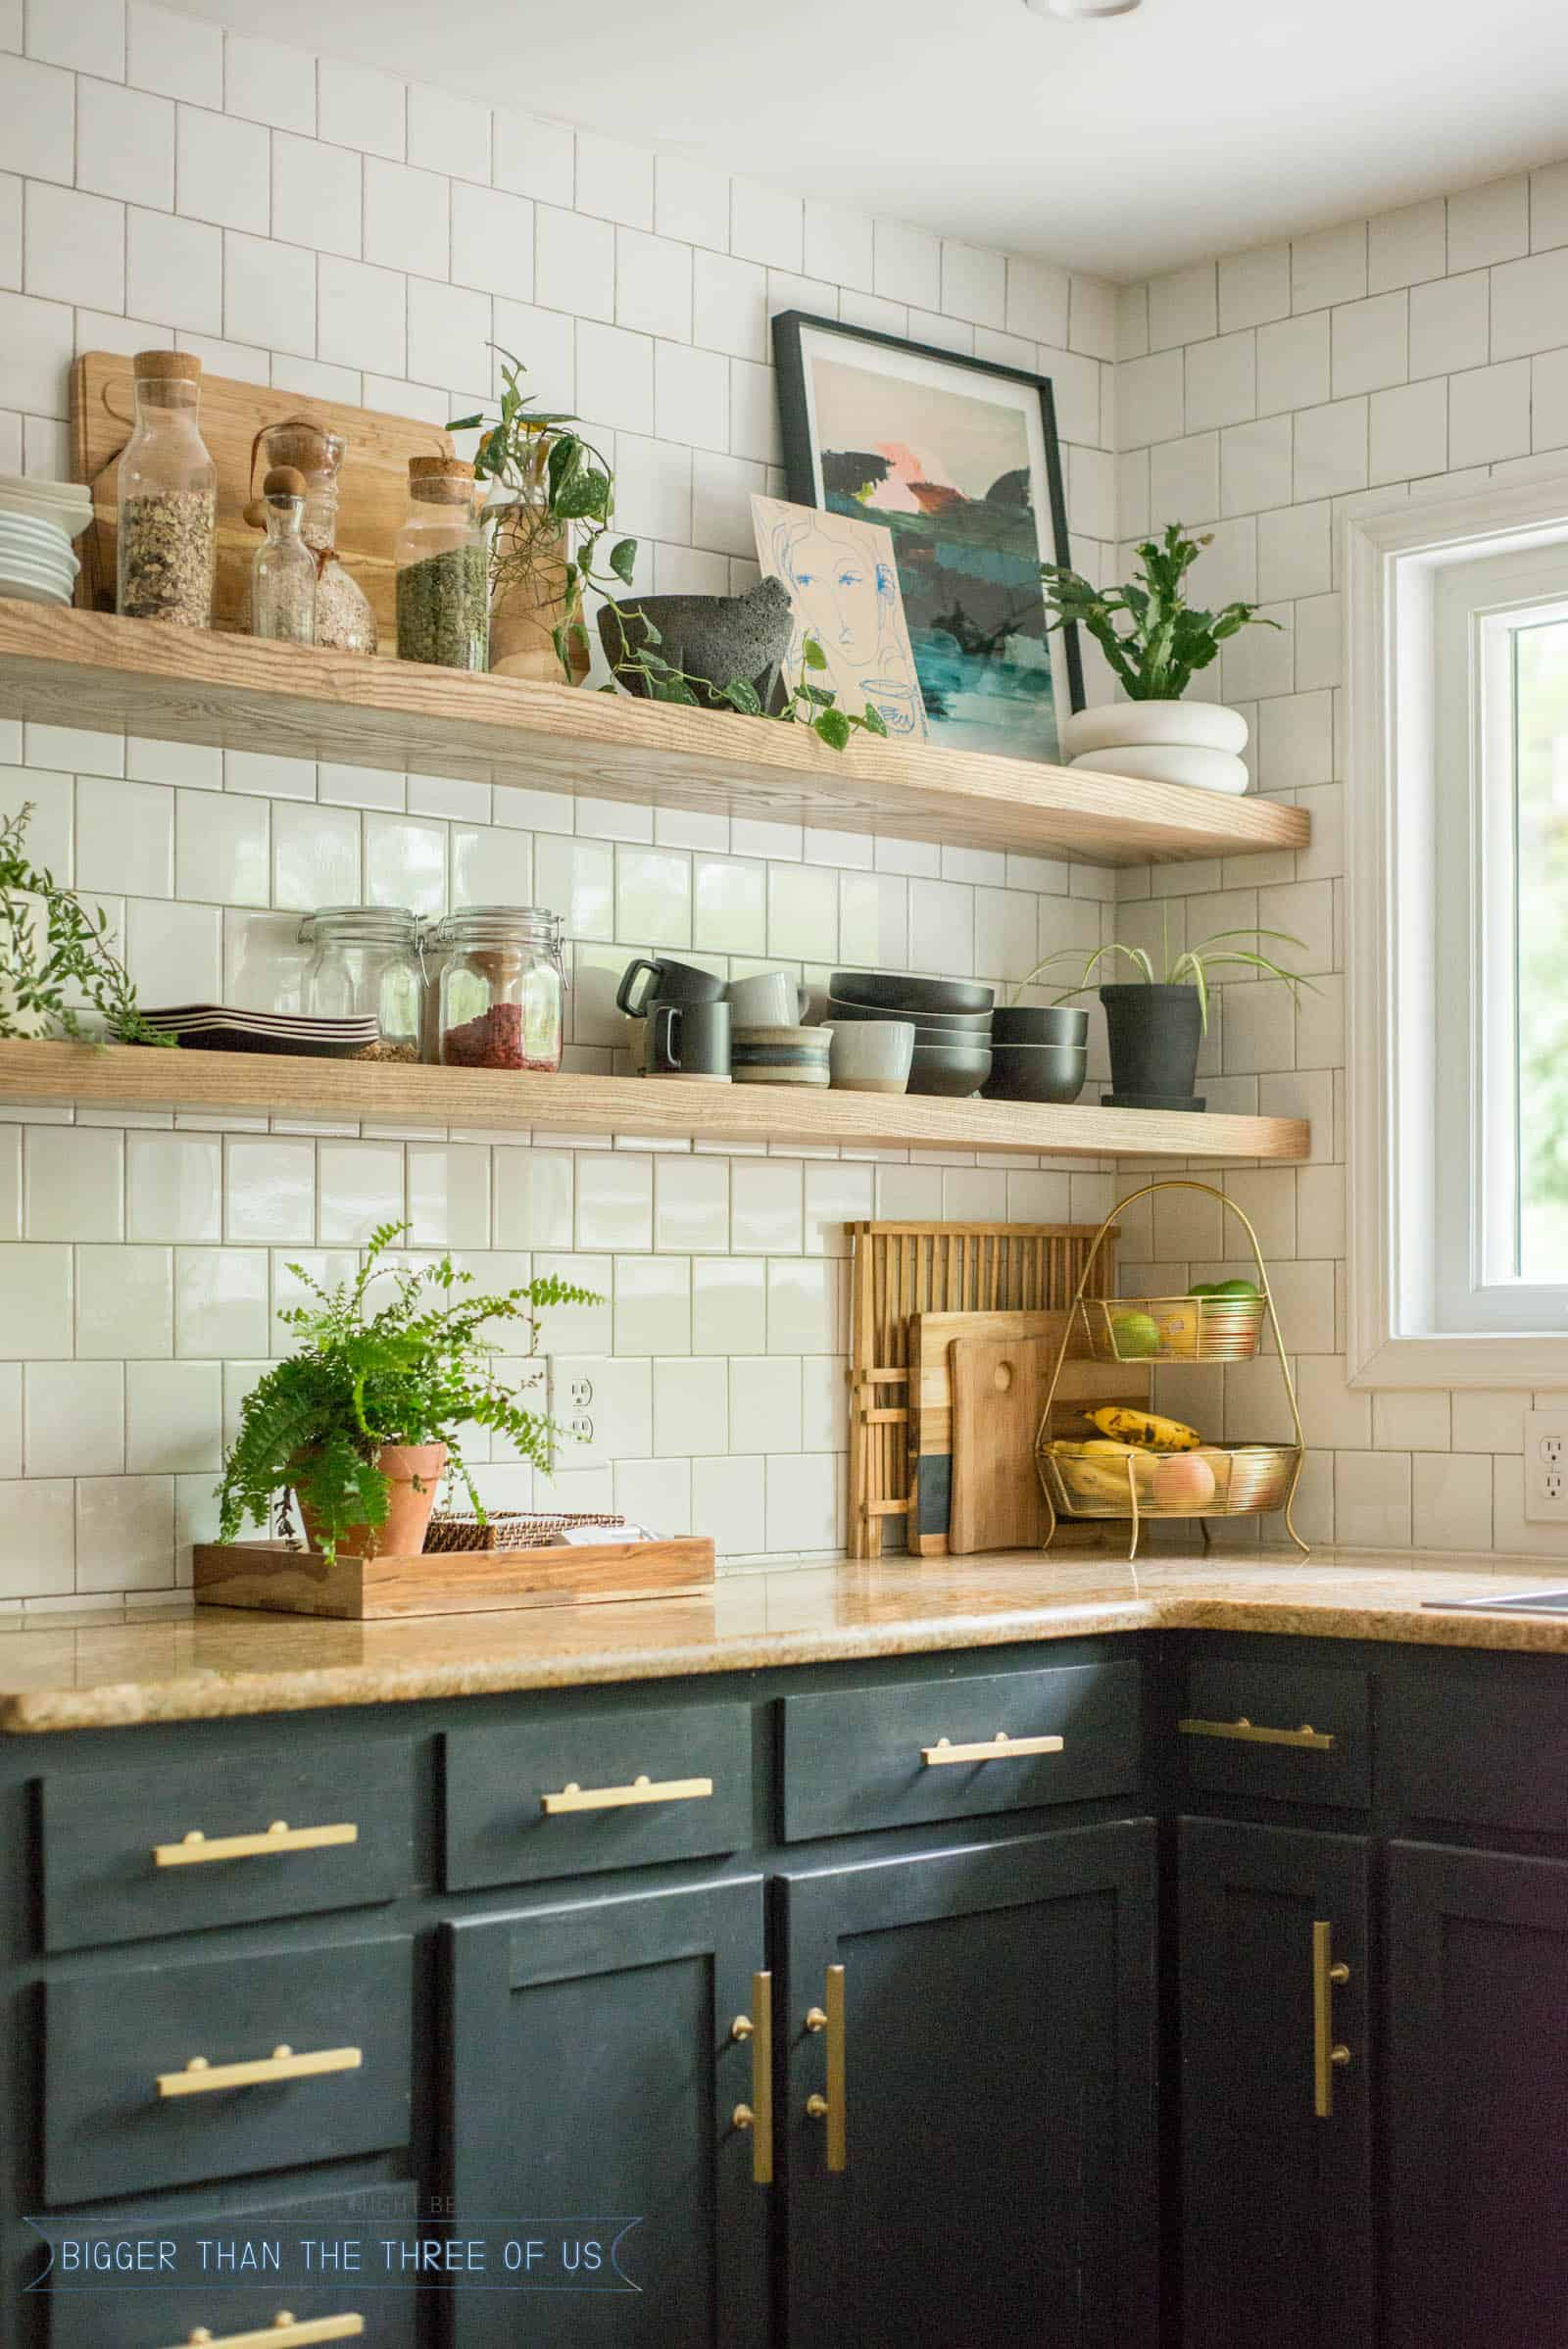 diy open shelving kitchen guide bigger than the three floating shelves that hold lot weight shelf height best ikea hacks wall duster pine mounted bookshelves skinny desk table